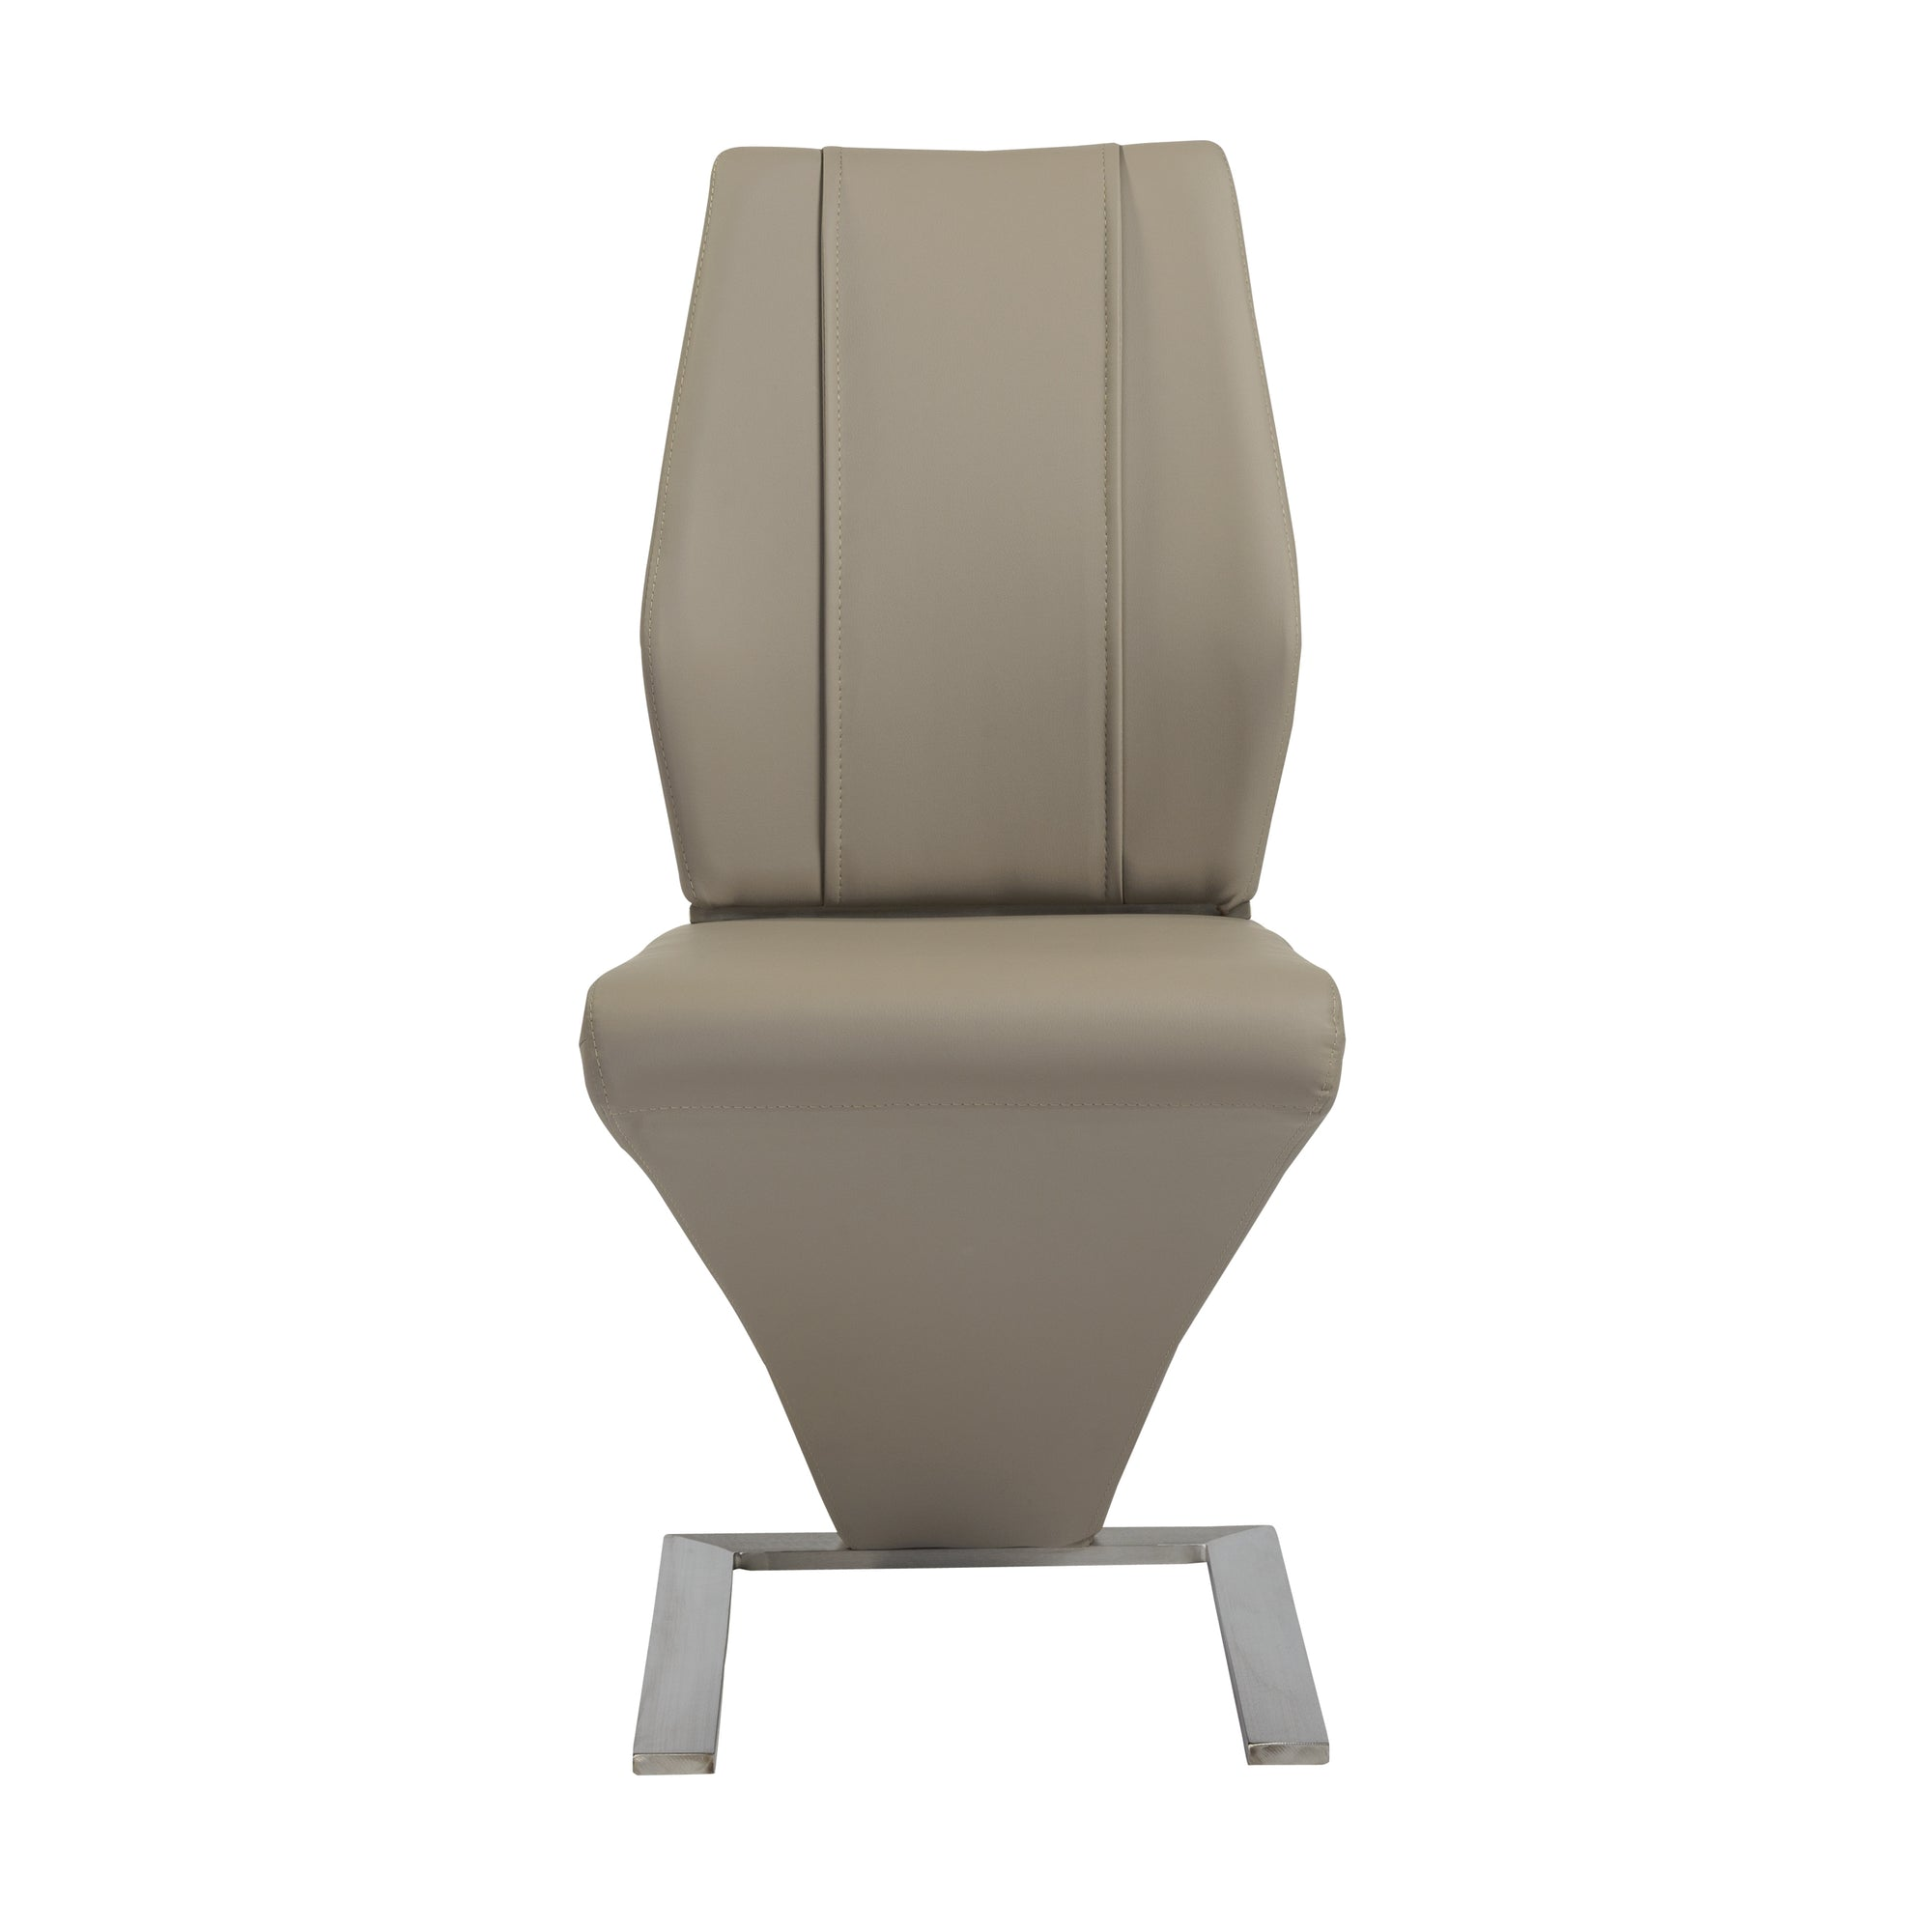 Exceptional Z Shaped Tan Leatherette Guest Or Conference Chairs (Set Of 2)